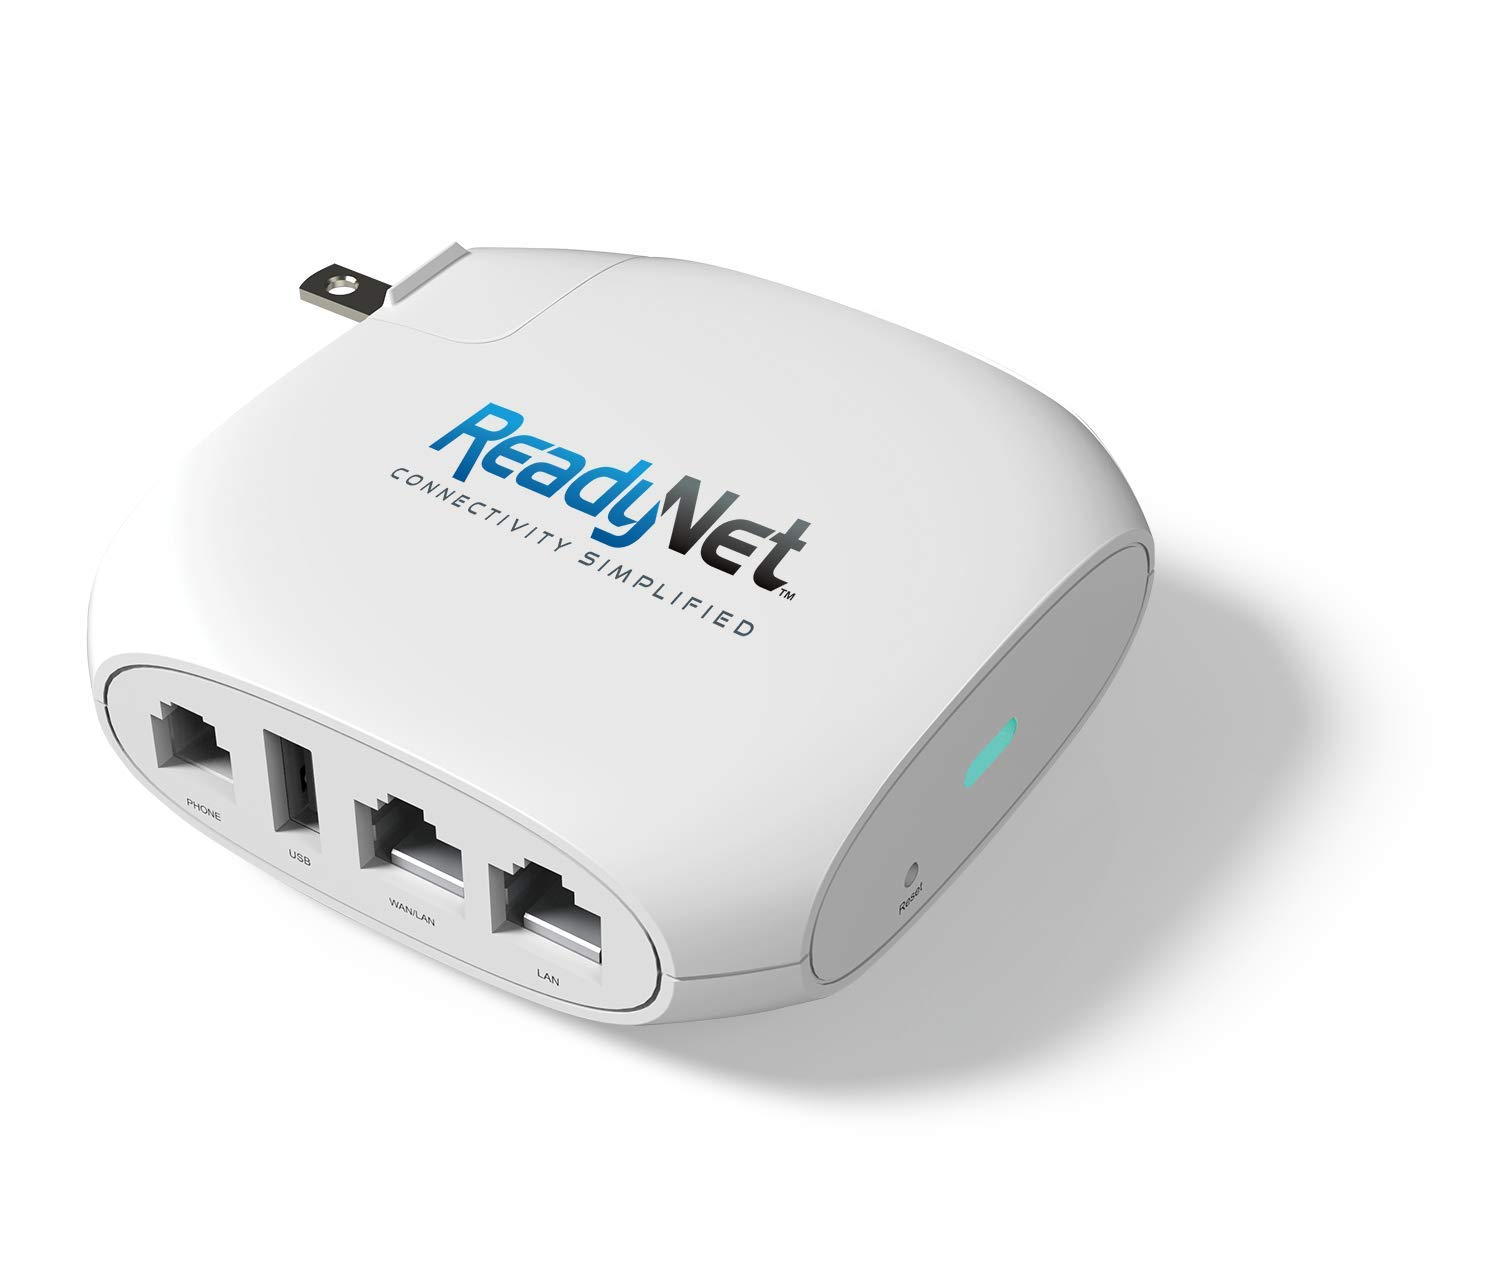 ReadyNet Wireless VoIP Wi-Fi Router, 802.11n, 1 FXS port for VoIP, Fast Ethernet, TR-069 Remote Management (QX300)